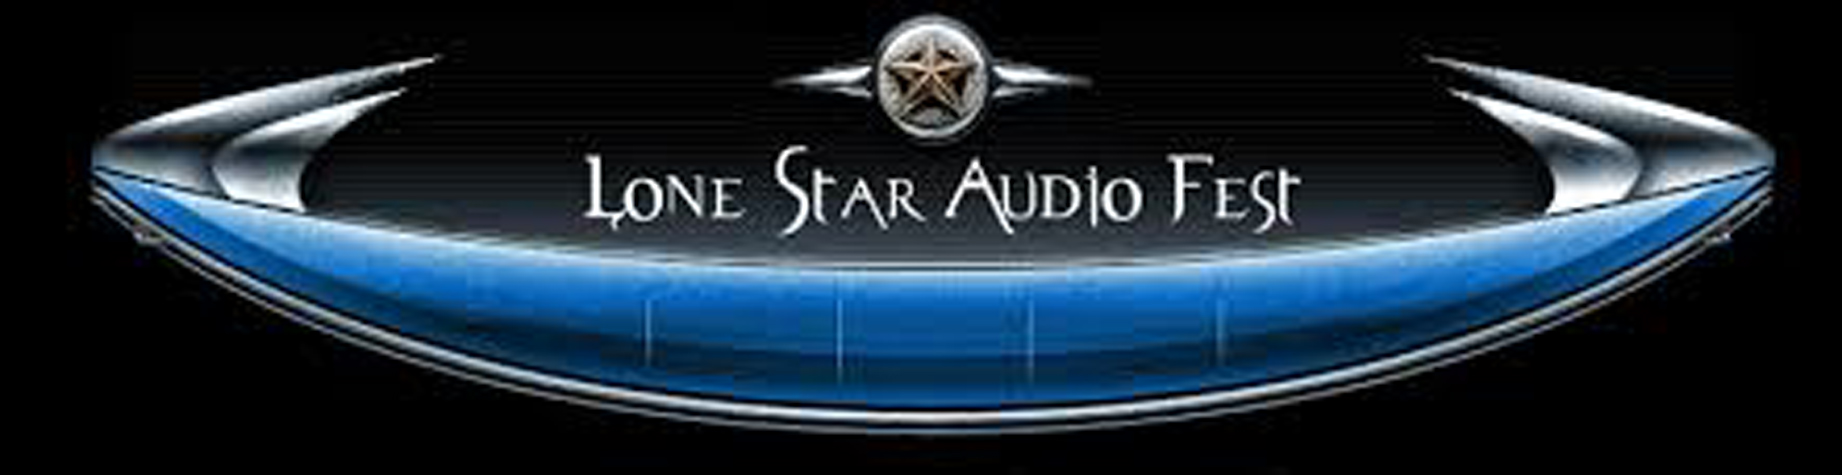 lone star audio fest logo.jpg